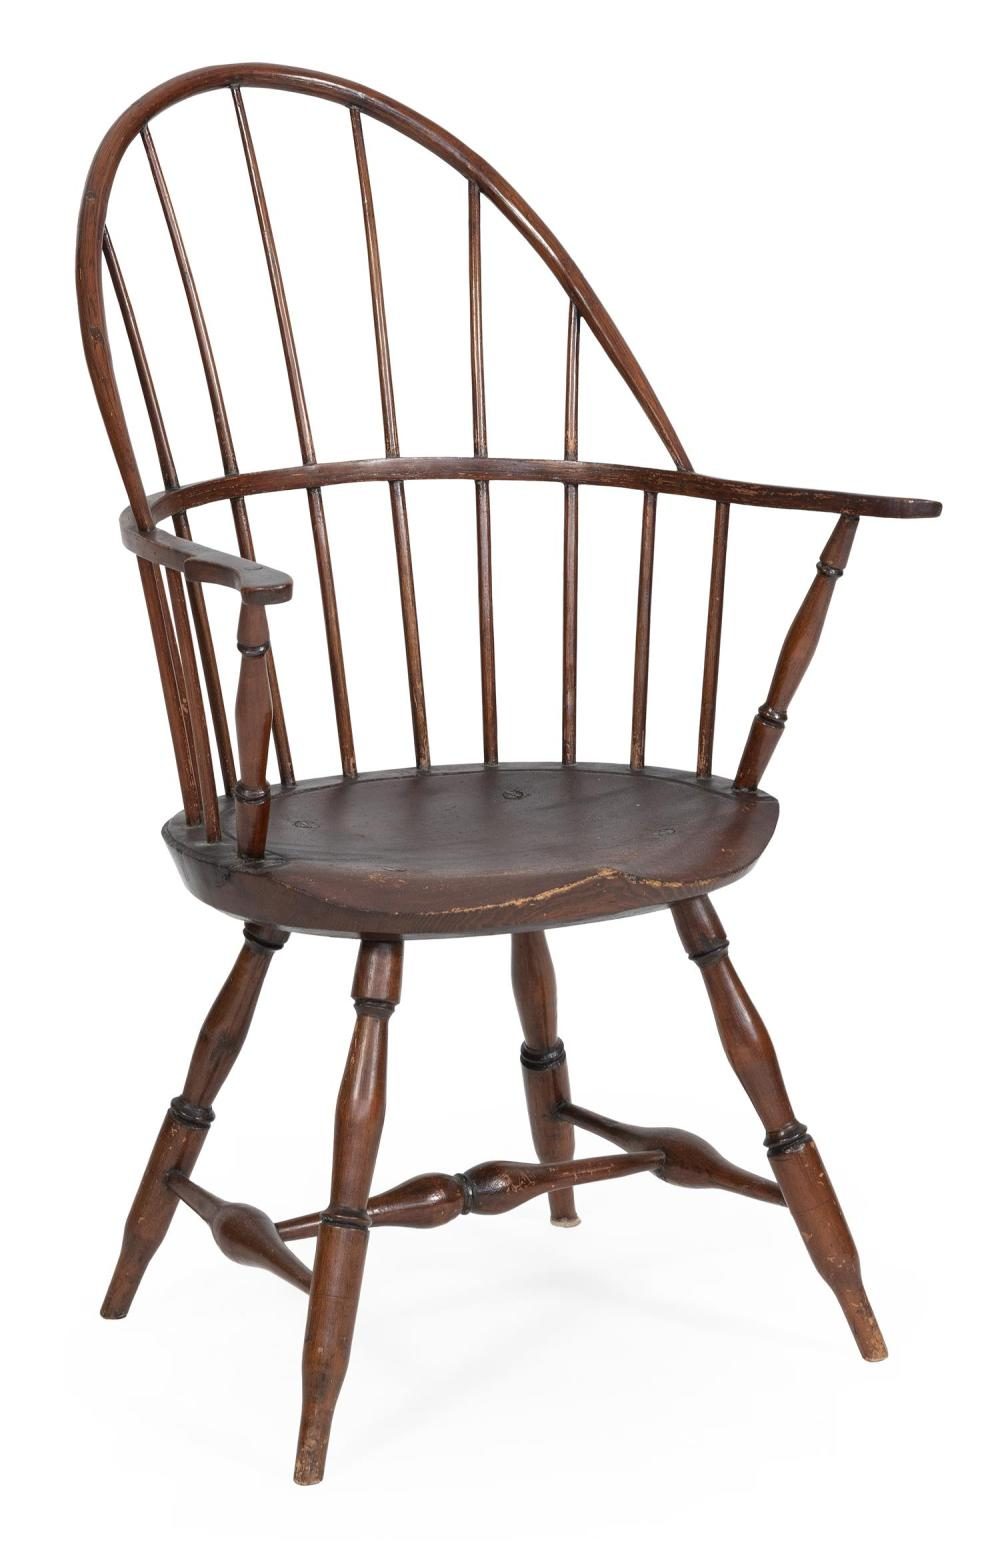 "WINDSOR BOWBACK ARMCHAIR Hardwood under an old deep brown finish. Back height 38.25"". Seat height 17.25""."